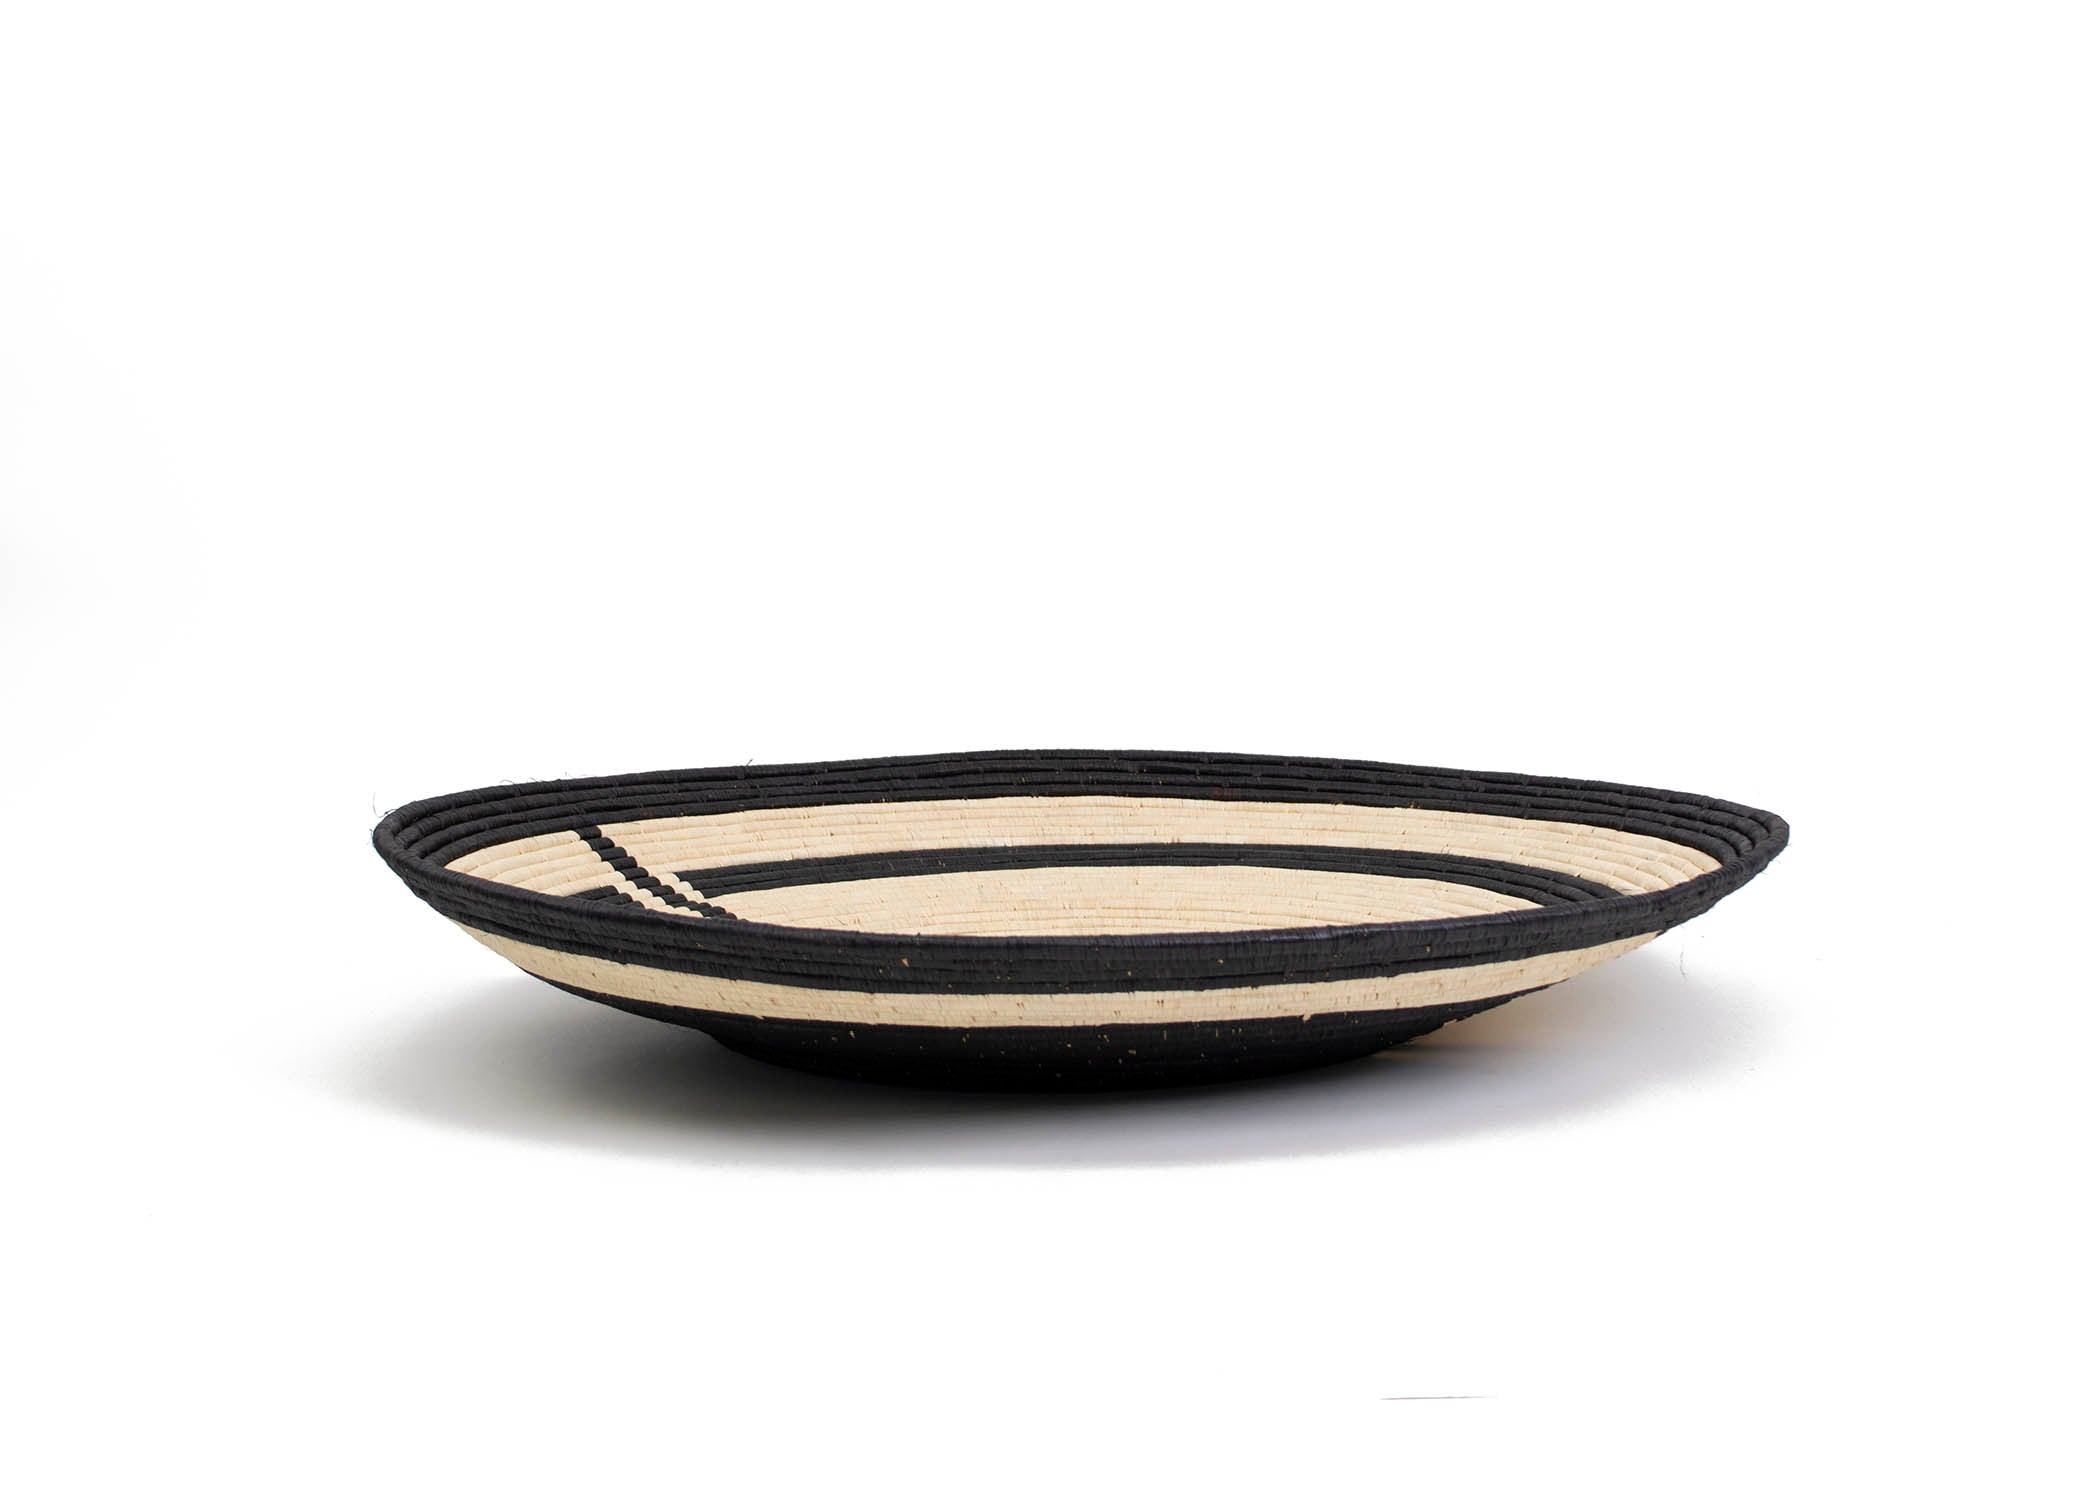 Geo Black Jumbo Raffia Plate - KAZI - Artisan made high quality home decor and wall art